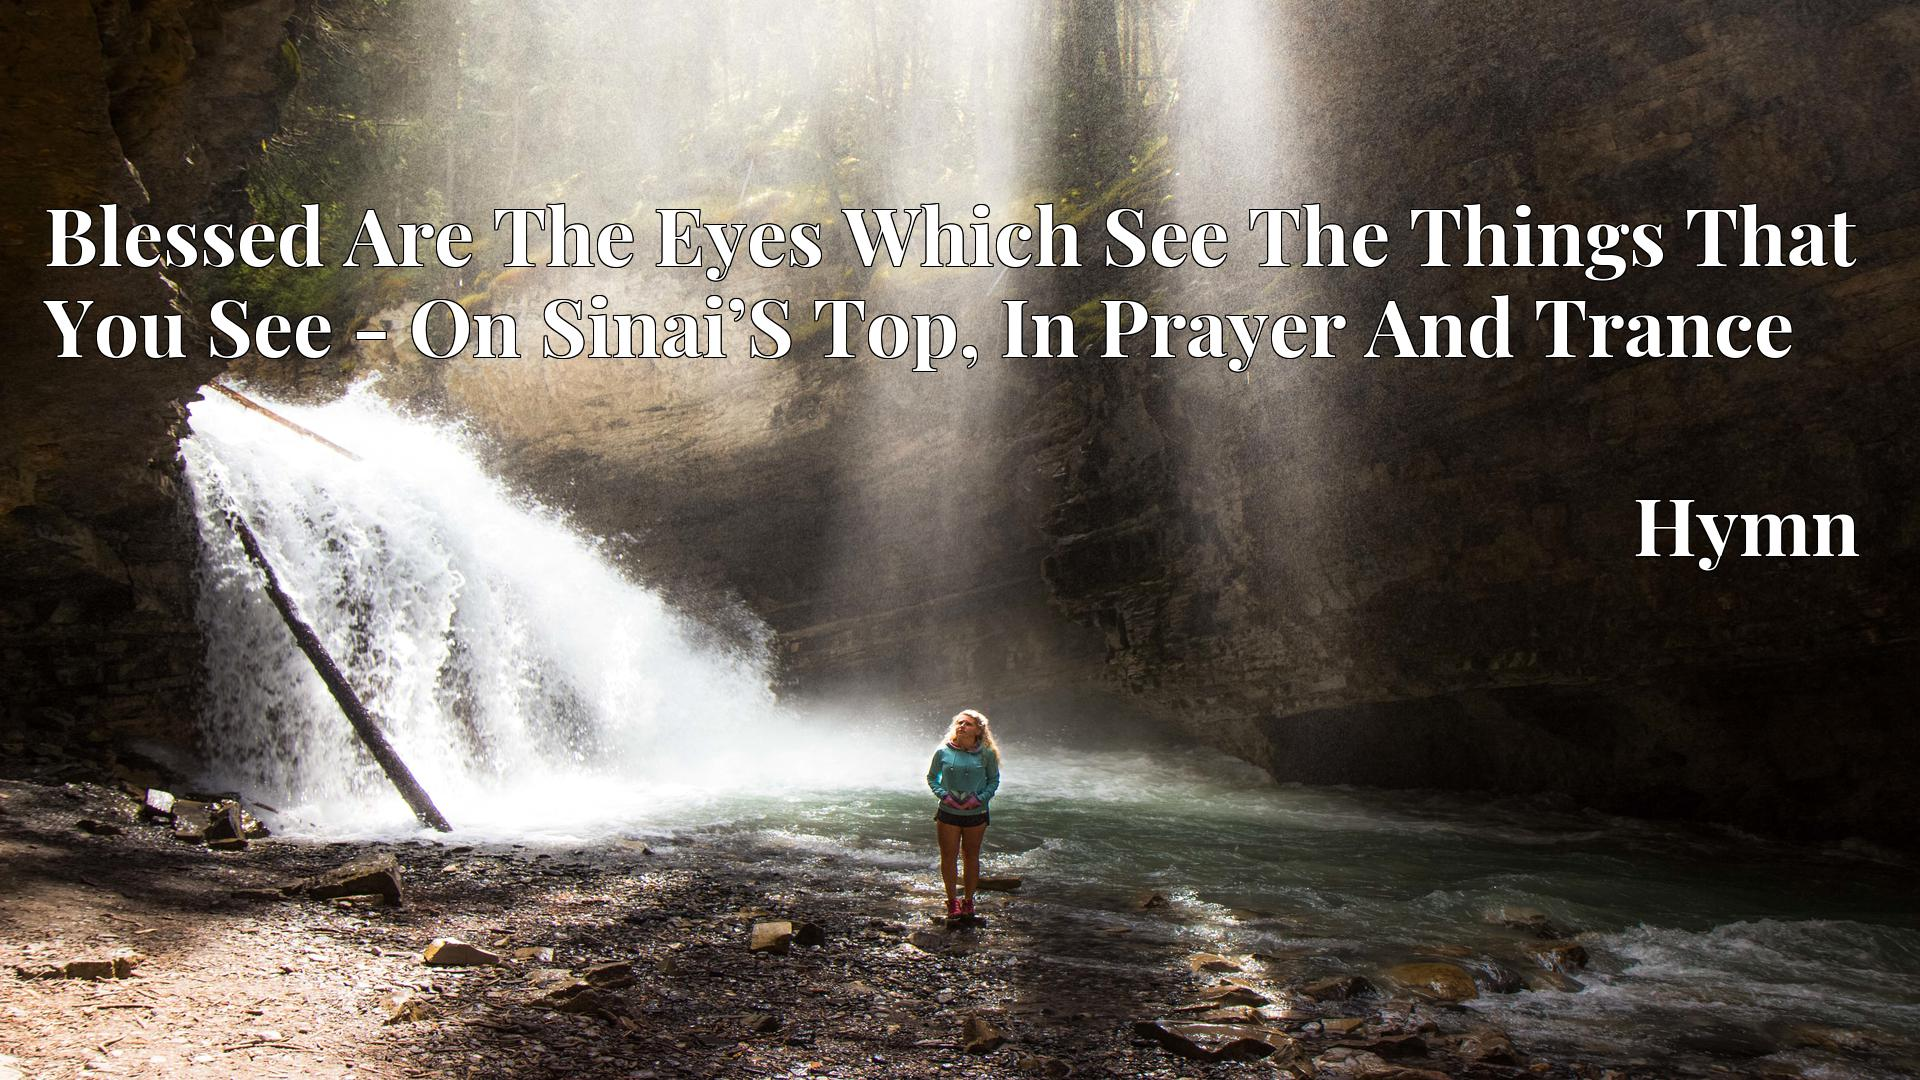 Blessed Are The Eyes Which See The Things That You See - On Sinai'S Top, In Prayer And Trance Hymn